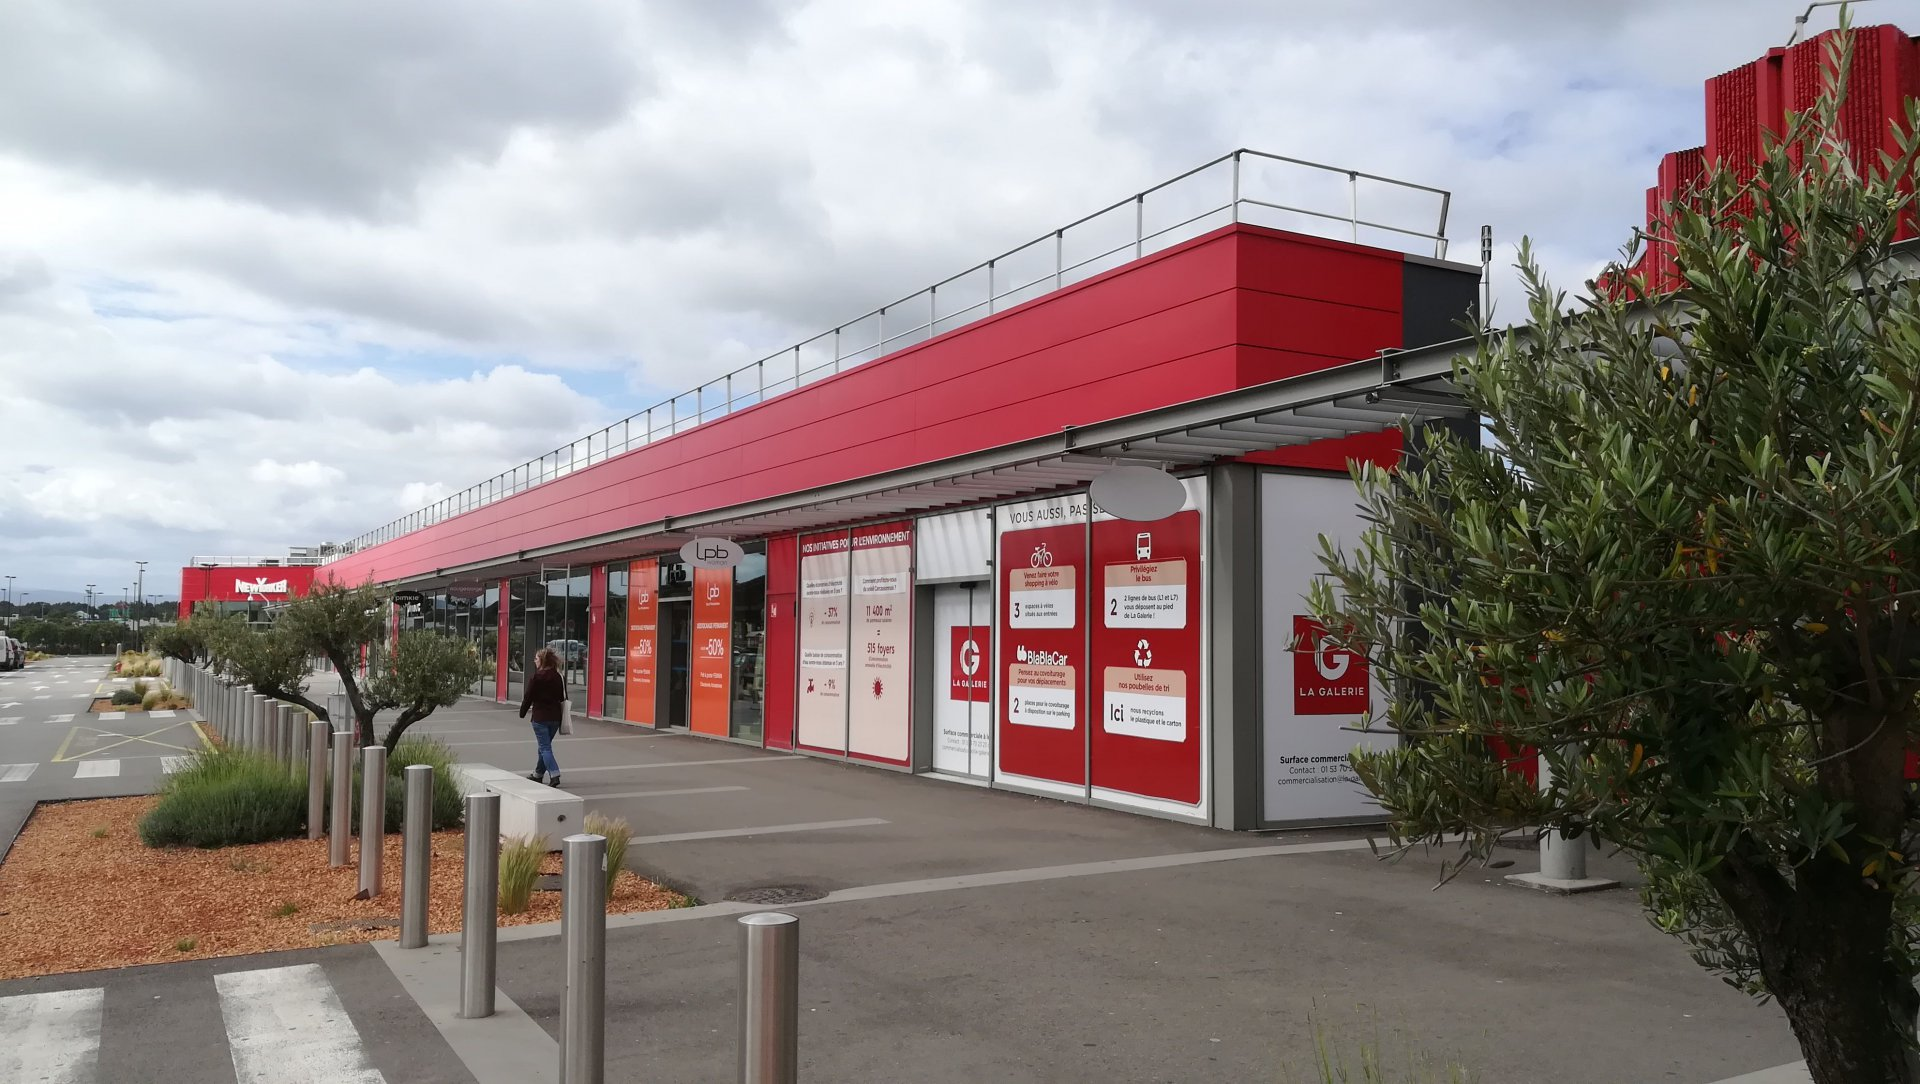 Local 170M² CC GEANT Carcassonne Salvaza